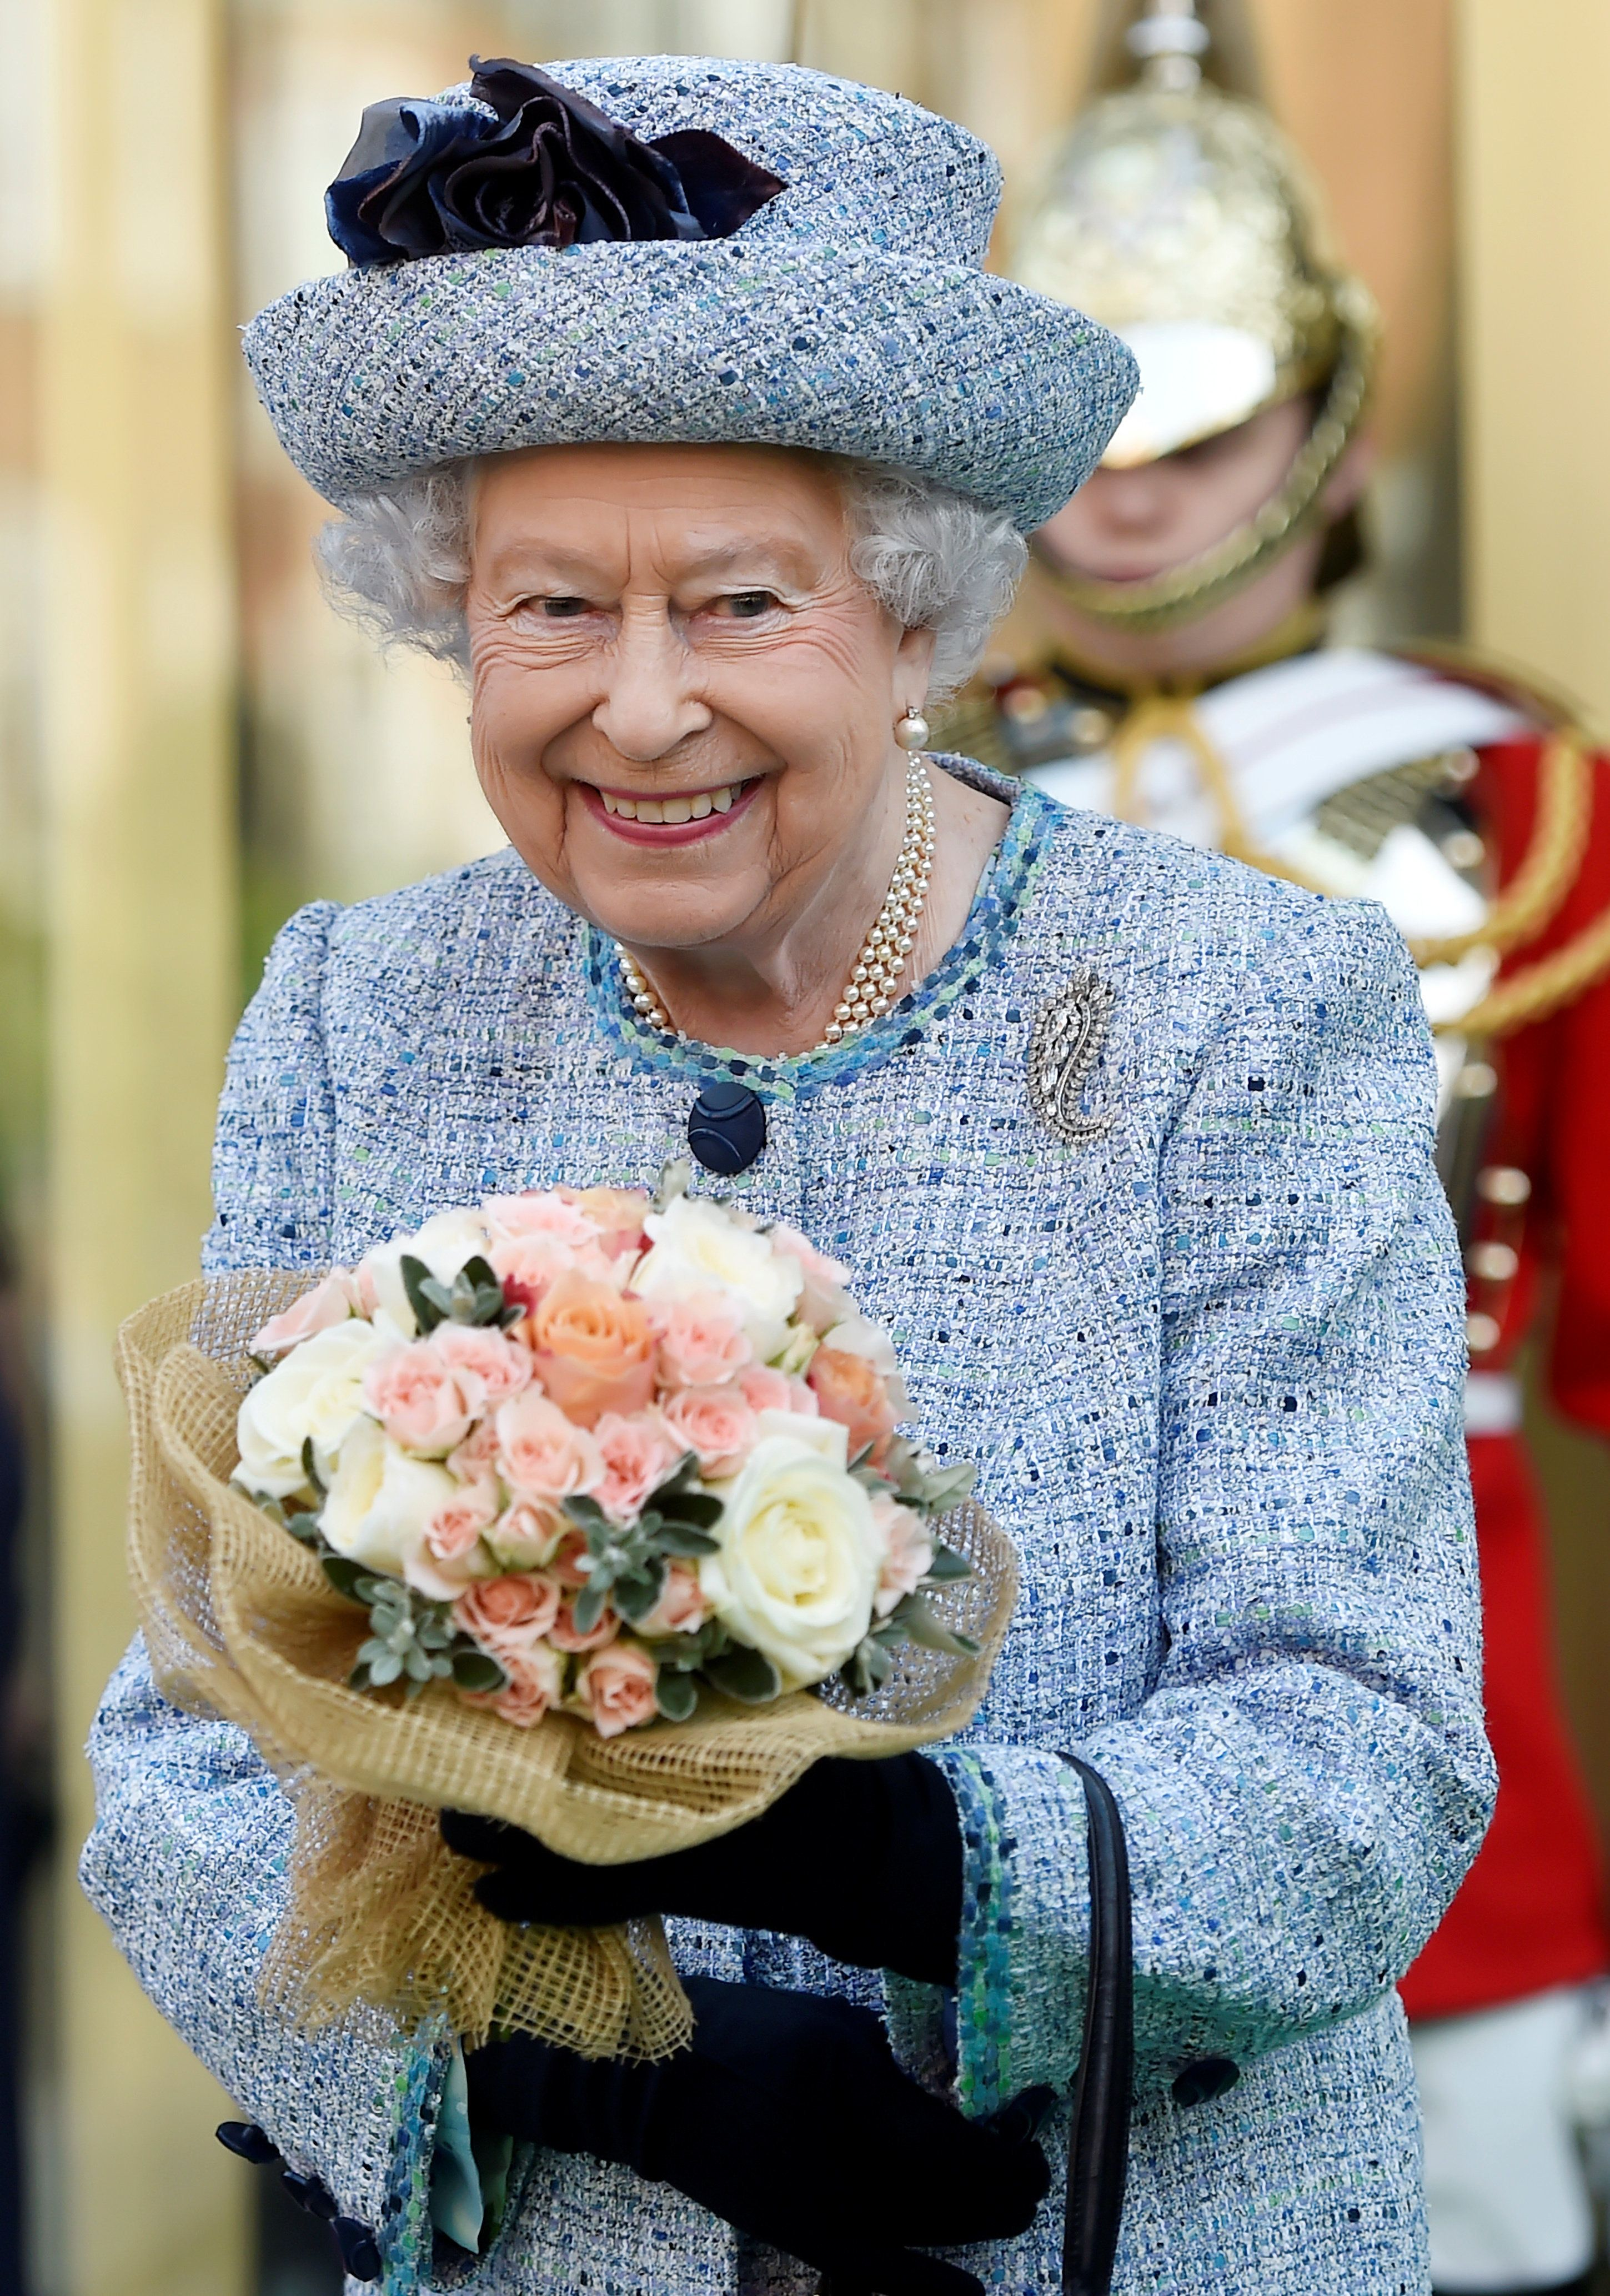 Queen Elizabeth Loves Cake So Much That She Travels With